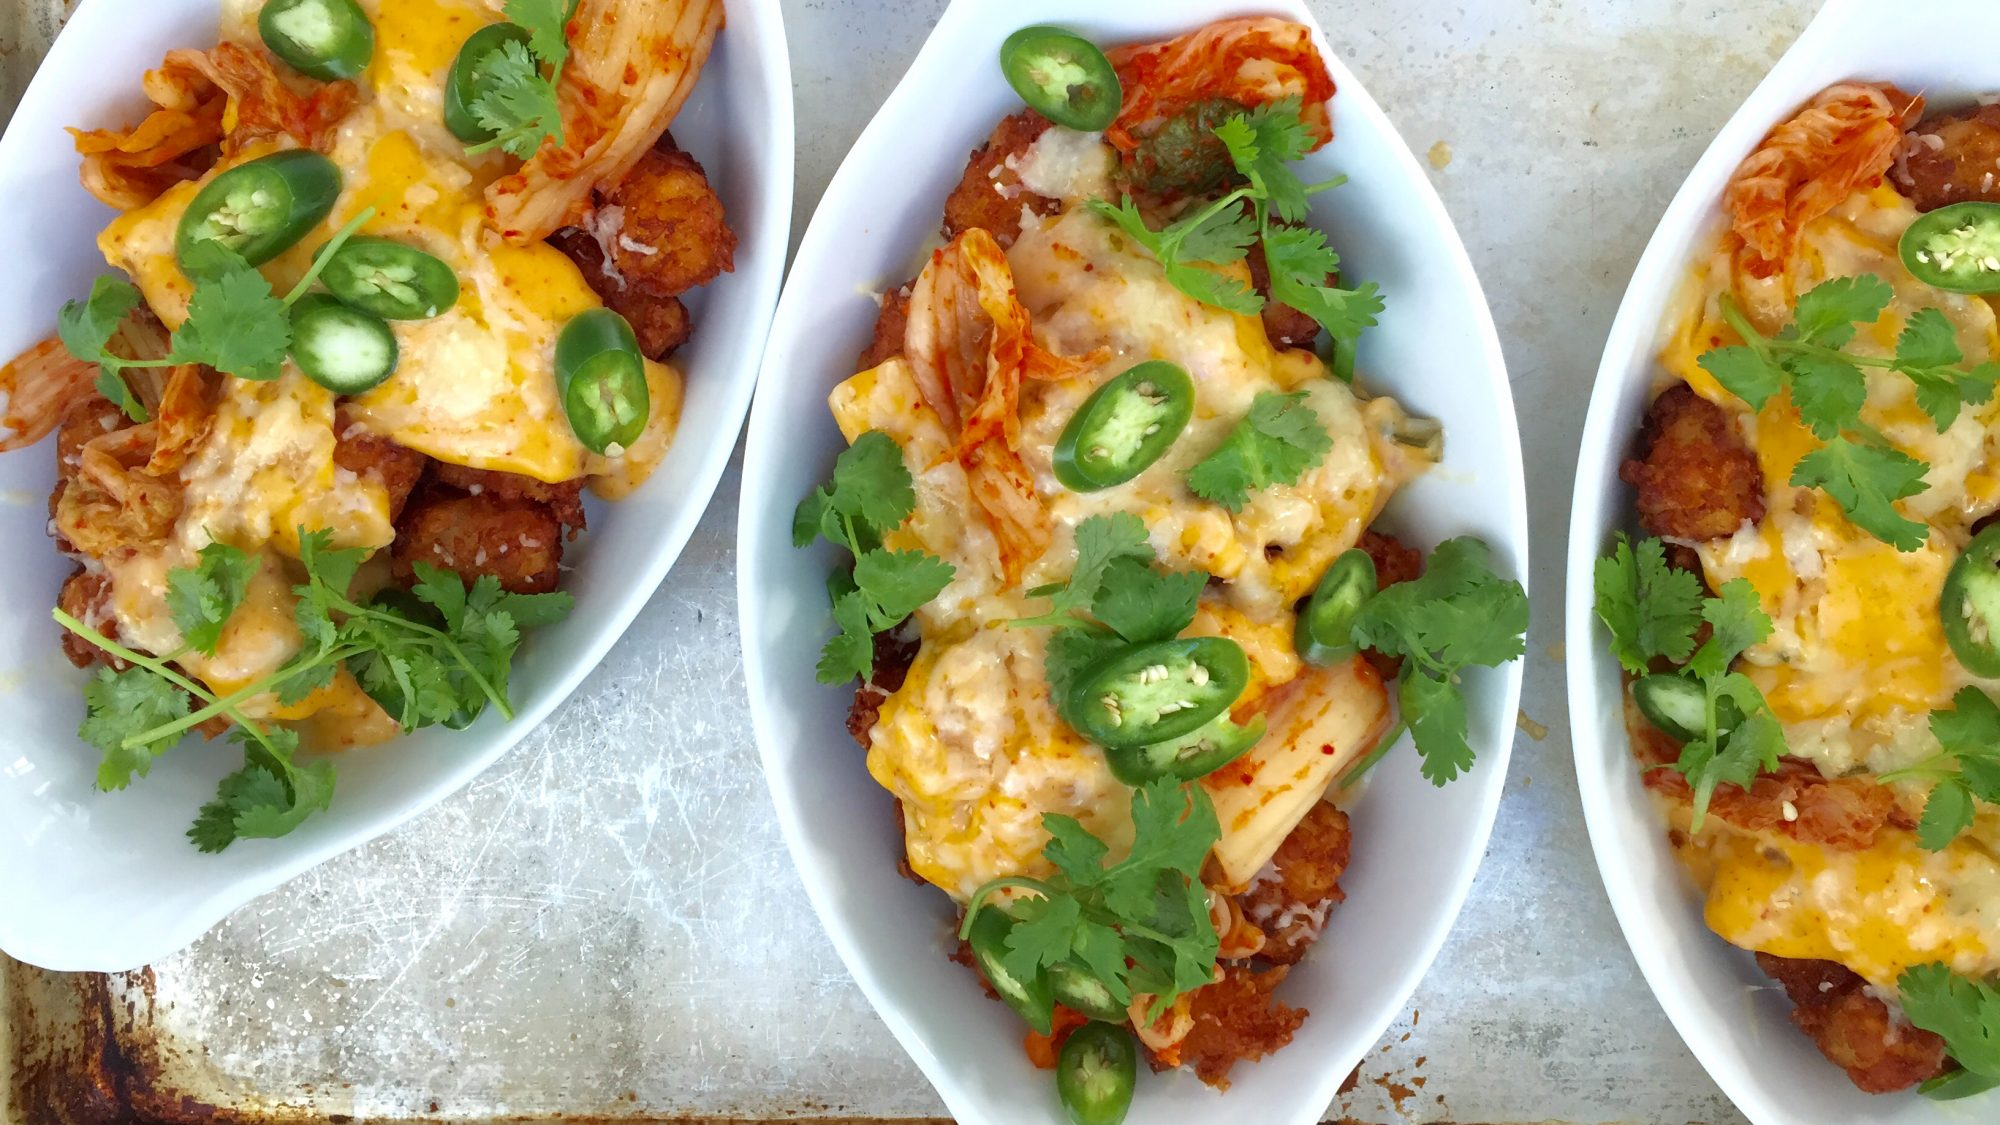 Tater Tot Nachos with Kimchi Cheese Sauce